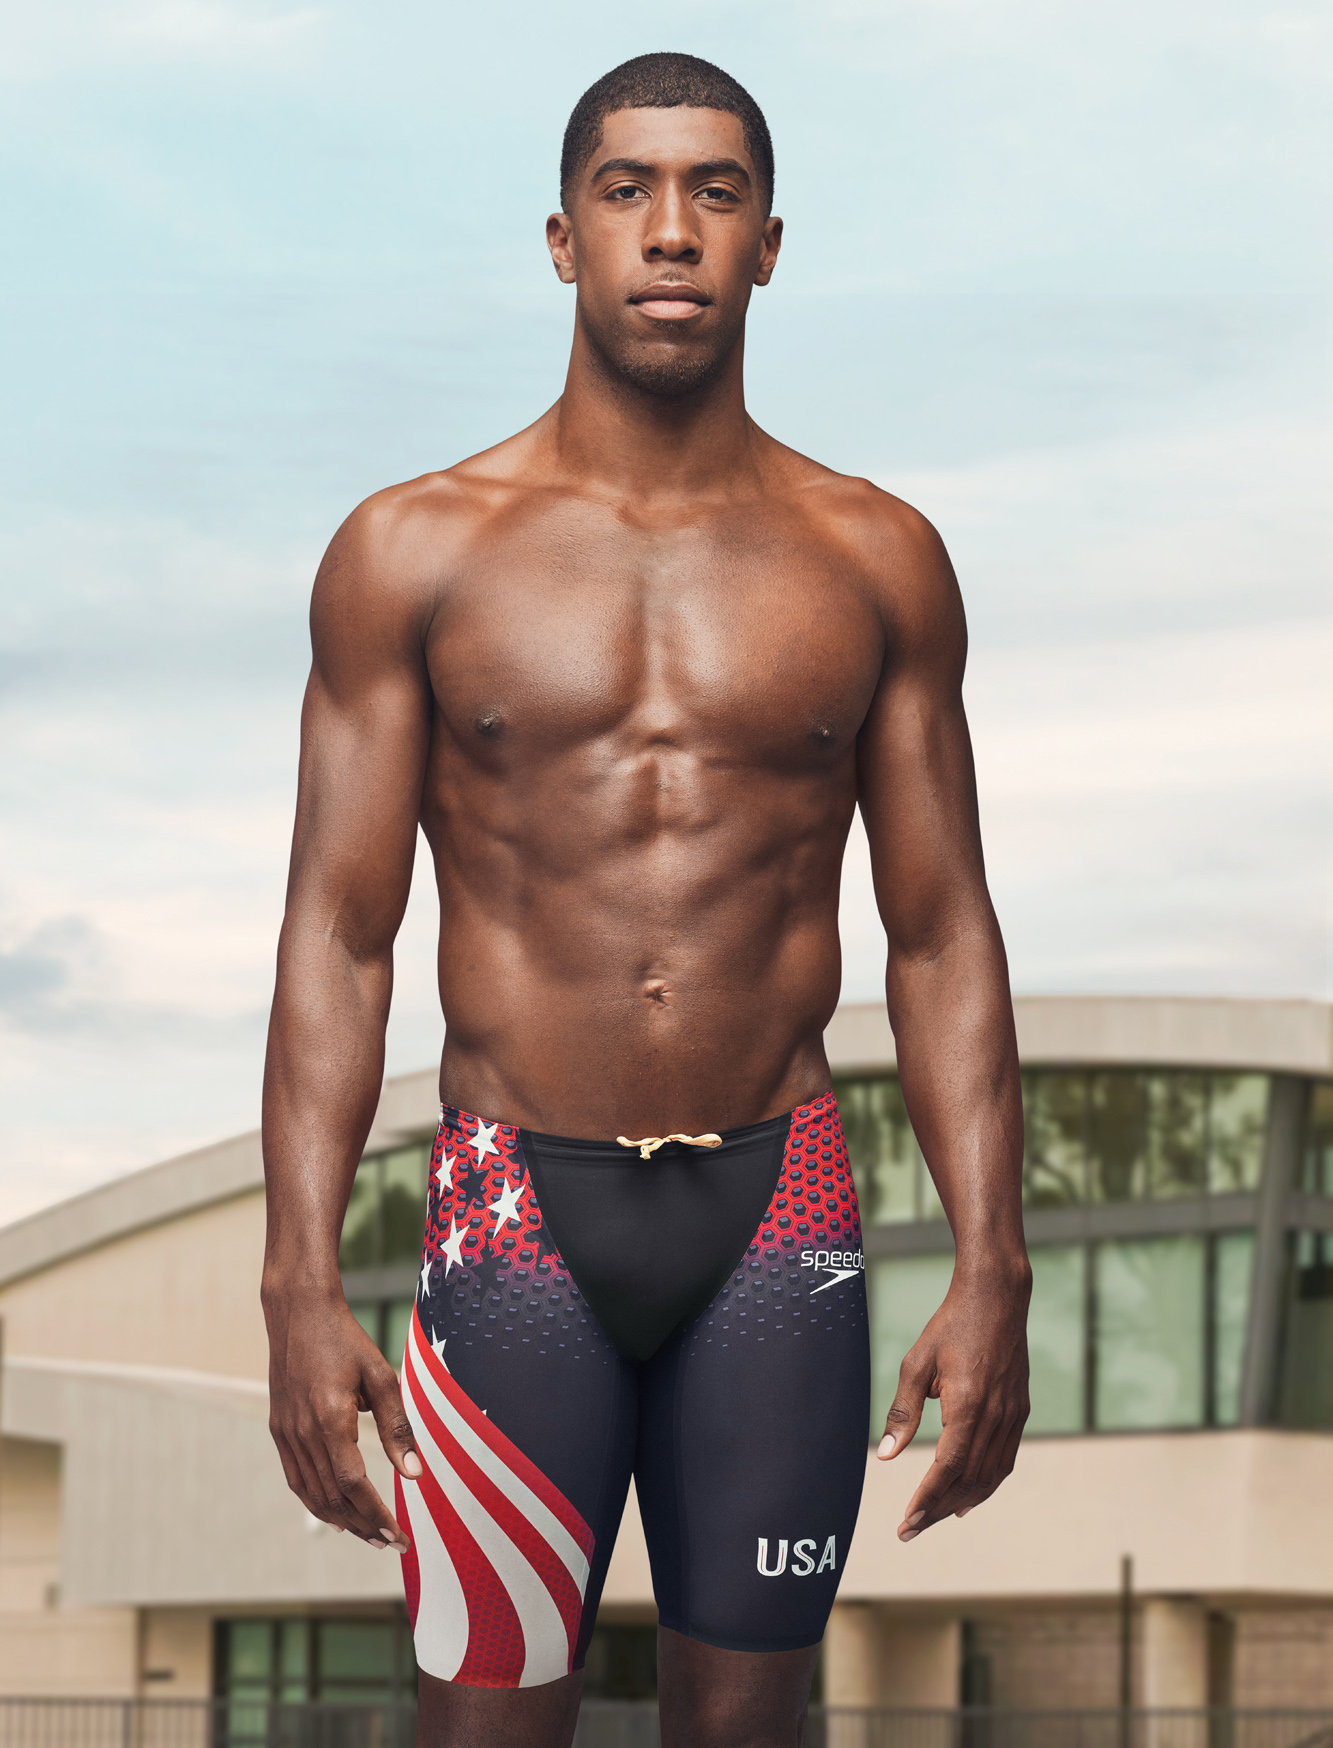 Paralympian Bronze Medalist Jamal Hill Wants to Share Swimming with the World